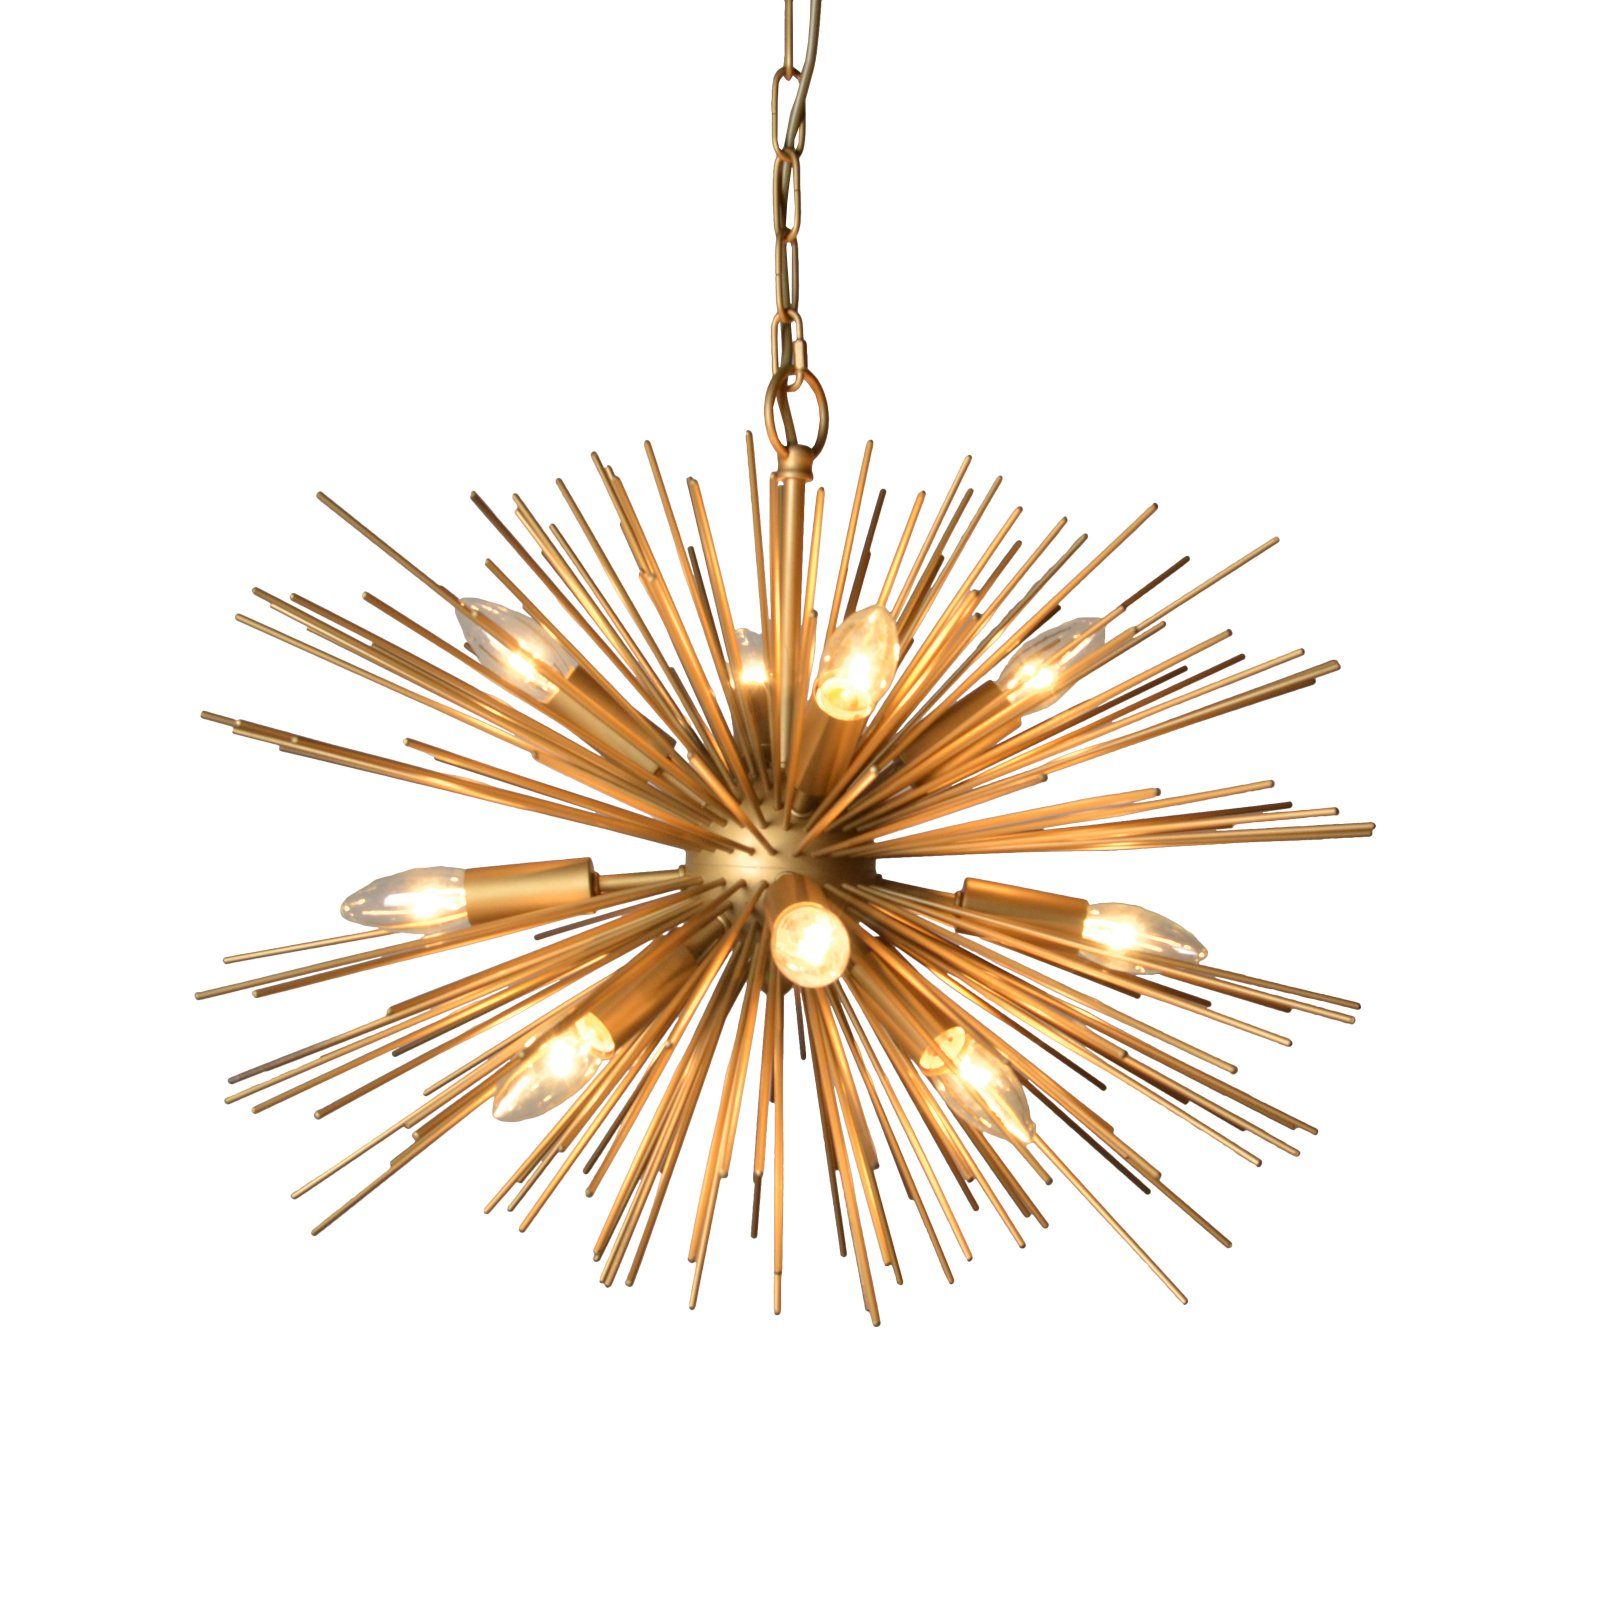 Y Decor Lz3349 12 Chandelier | Products In 2019 | Chandelier Throughout Nelly 12 Light Sputnik Chandeliers (View 4 of 30)